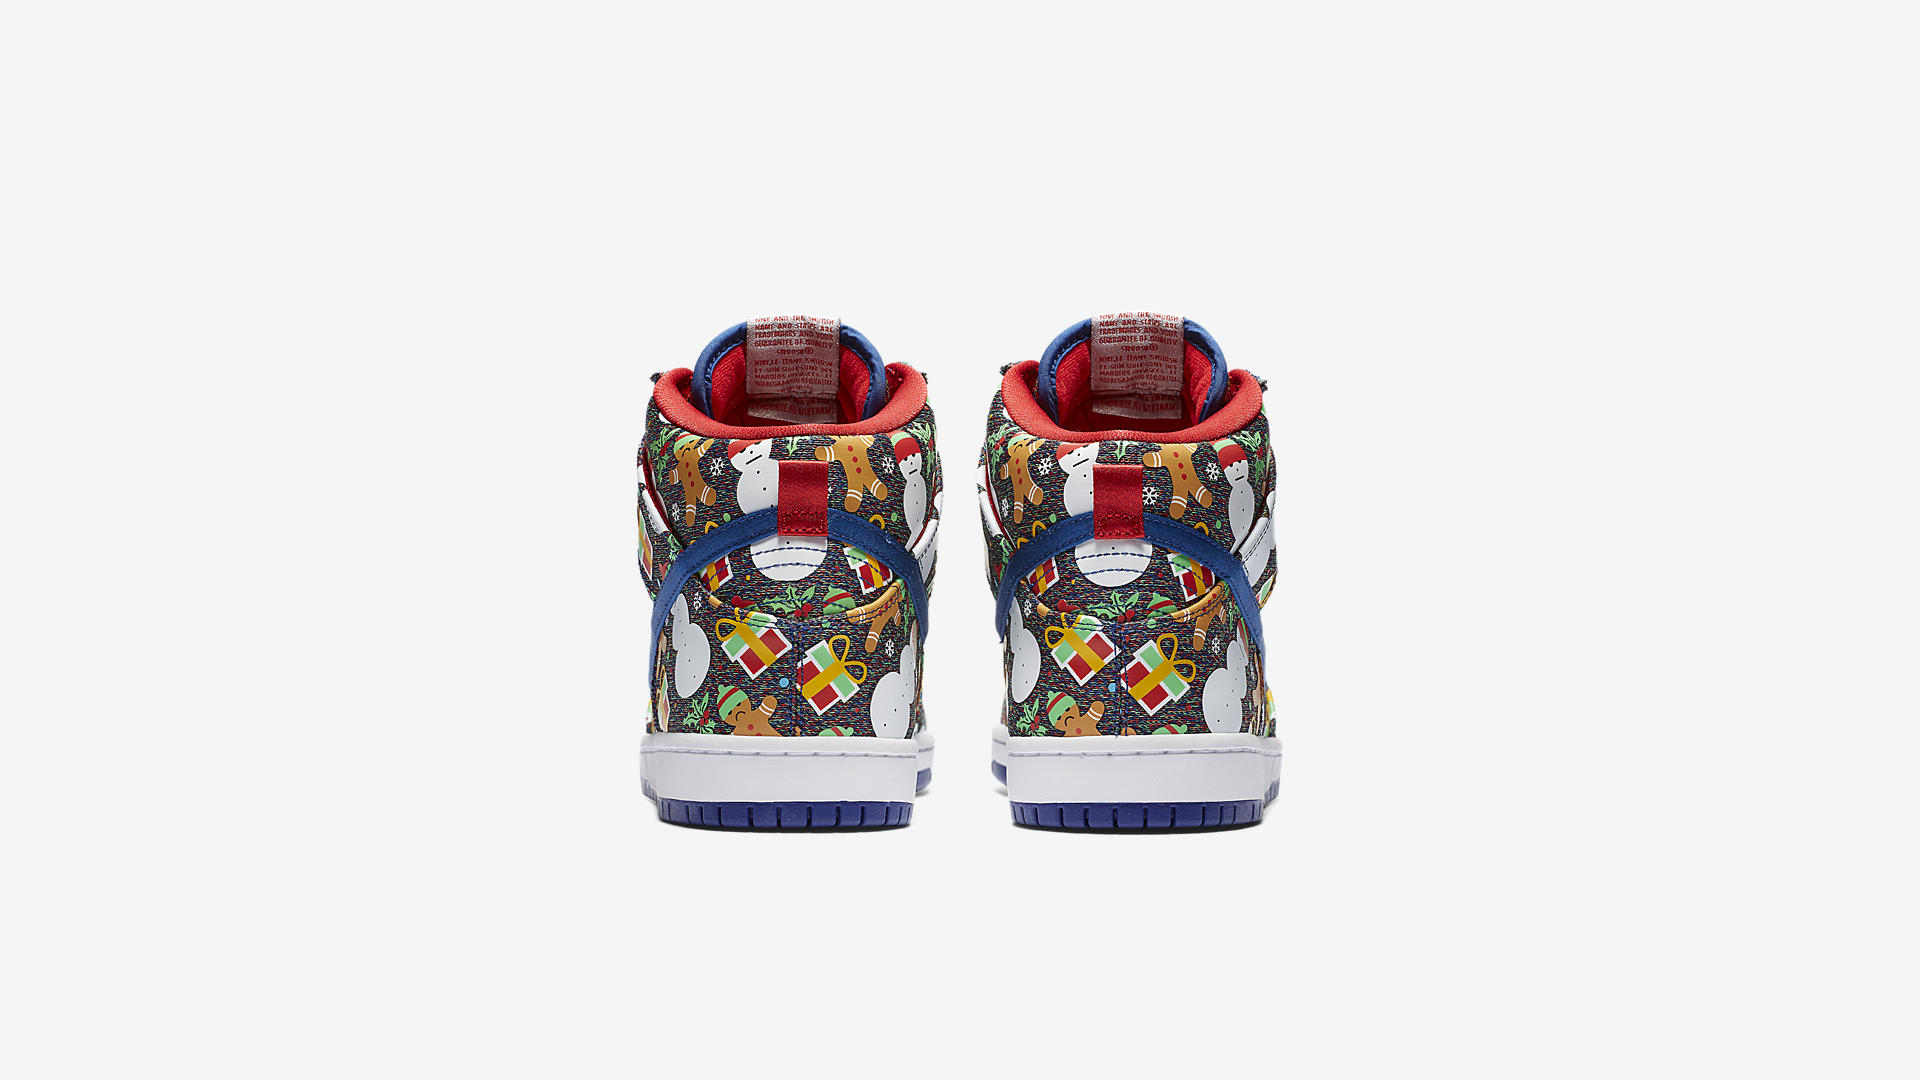 Concepts x Nike SB Dunk Pro High Ugly Sweater 2